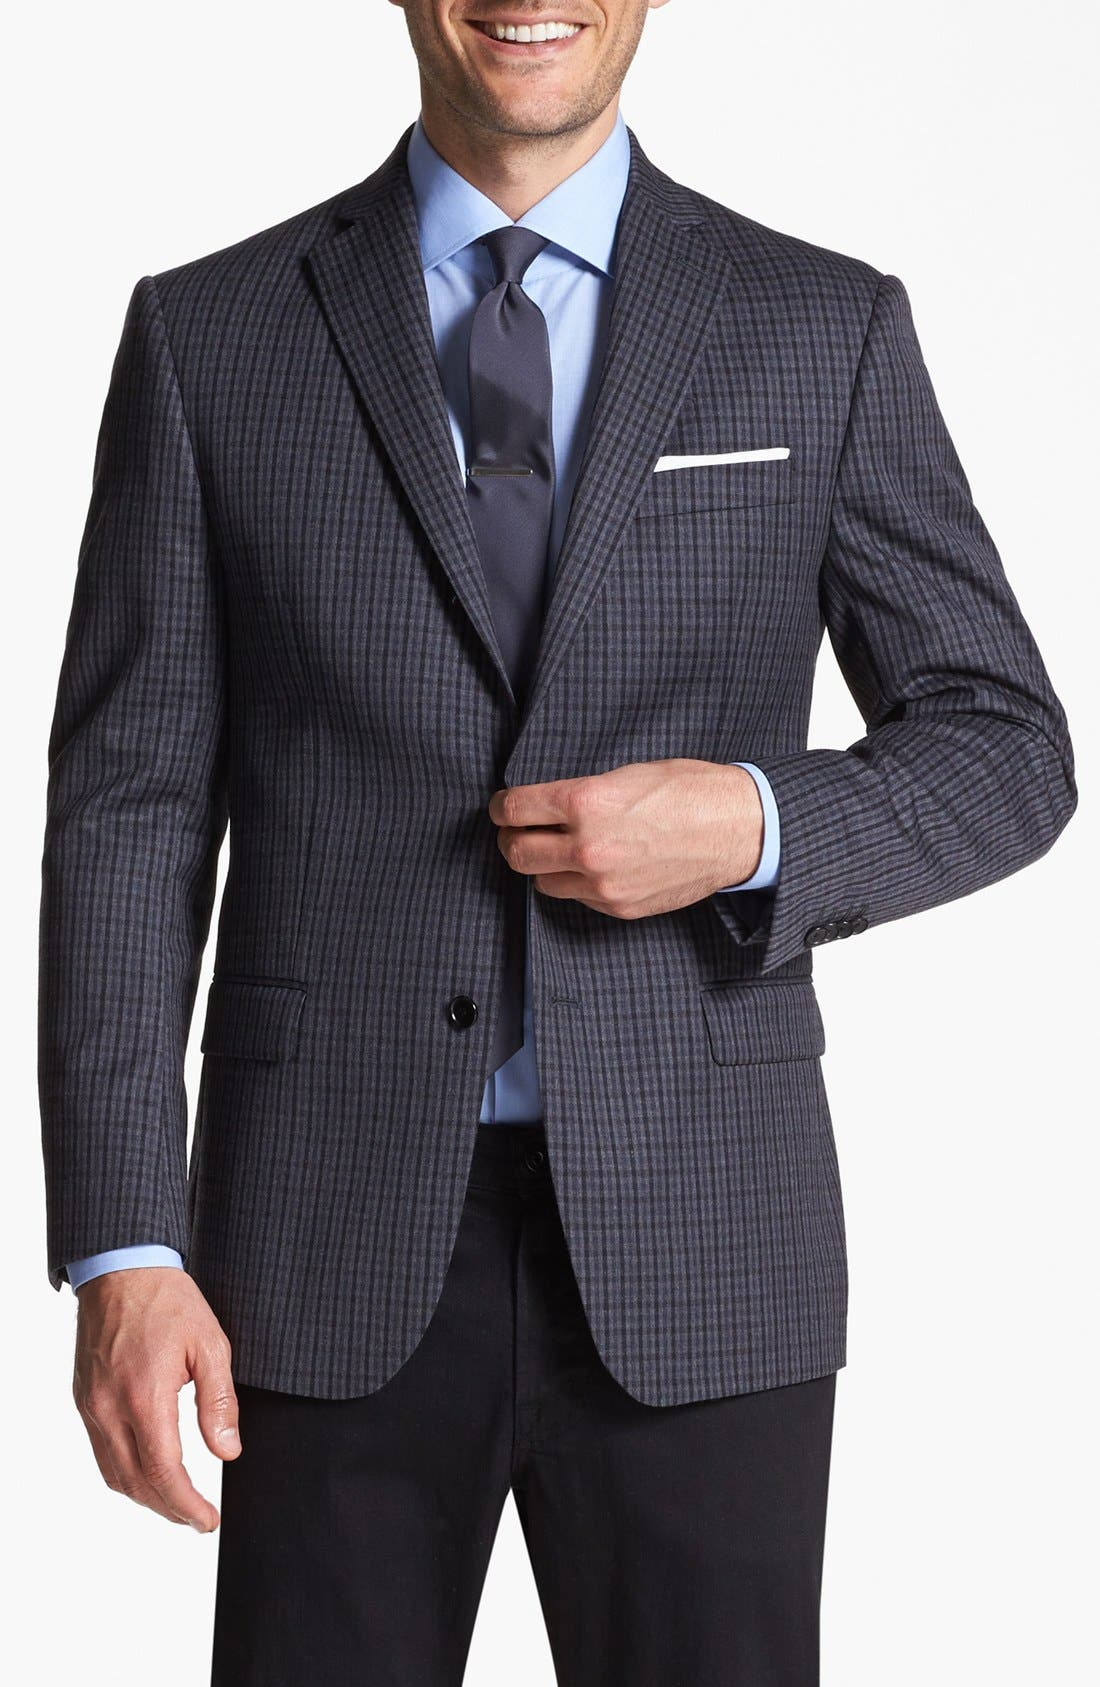 Alternate Image 1 Selected - Michael Kors Trim Fit Plaid Sportcoat